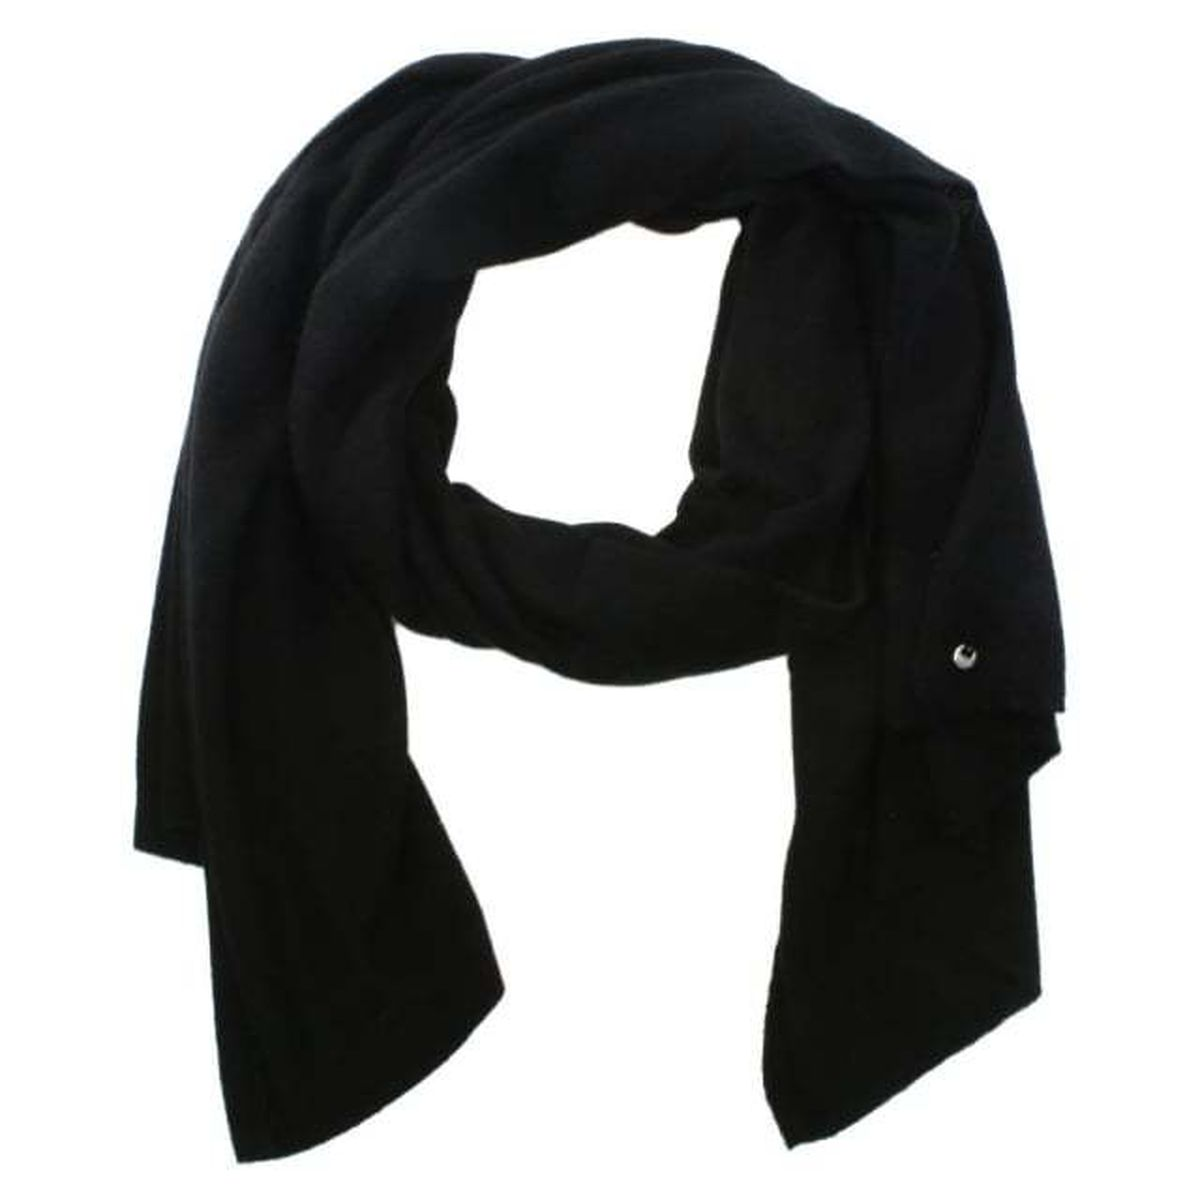 Ugg Luxe Cashmere Oversized Wrap